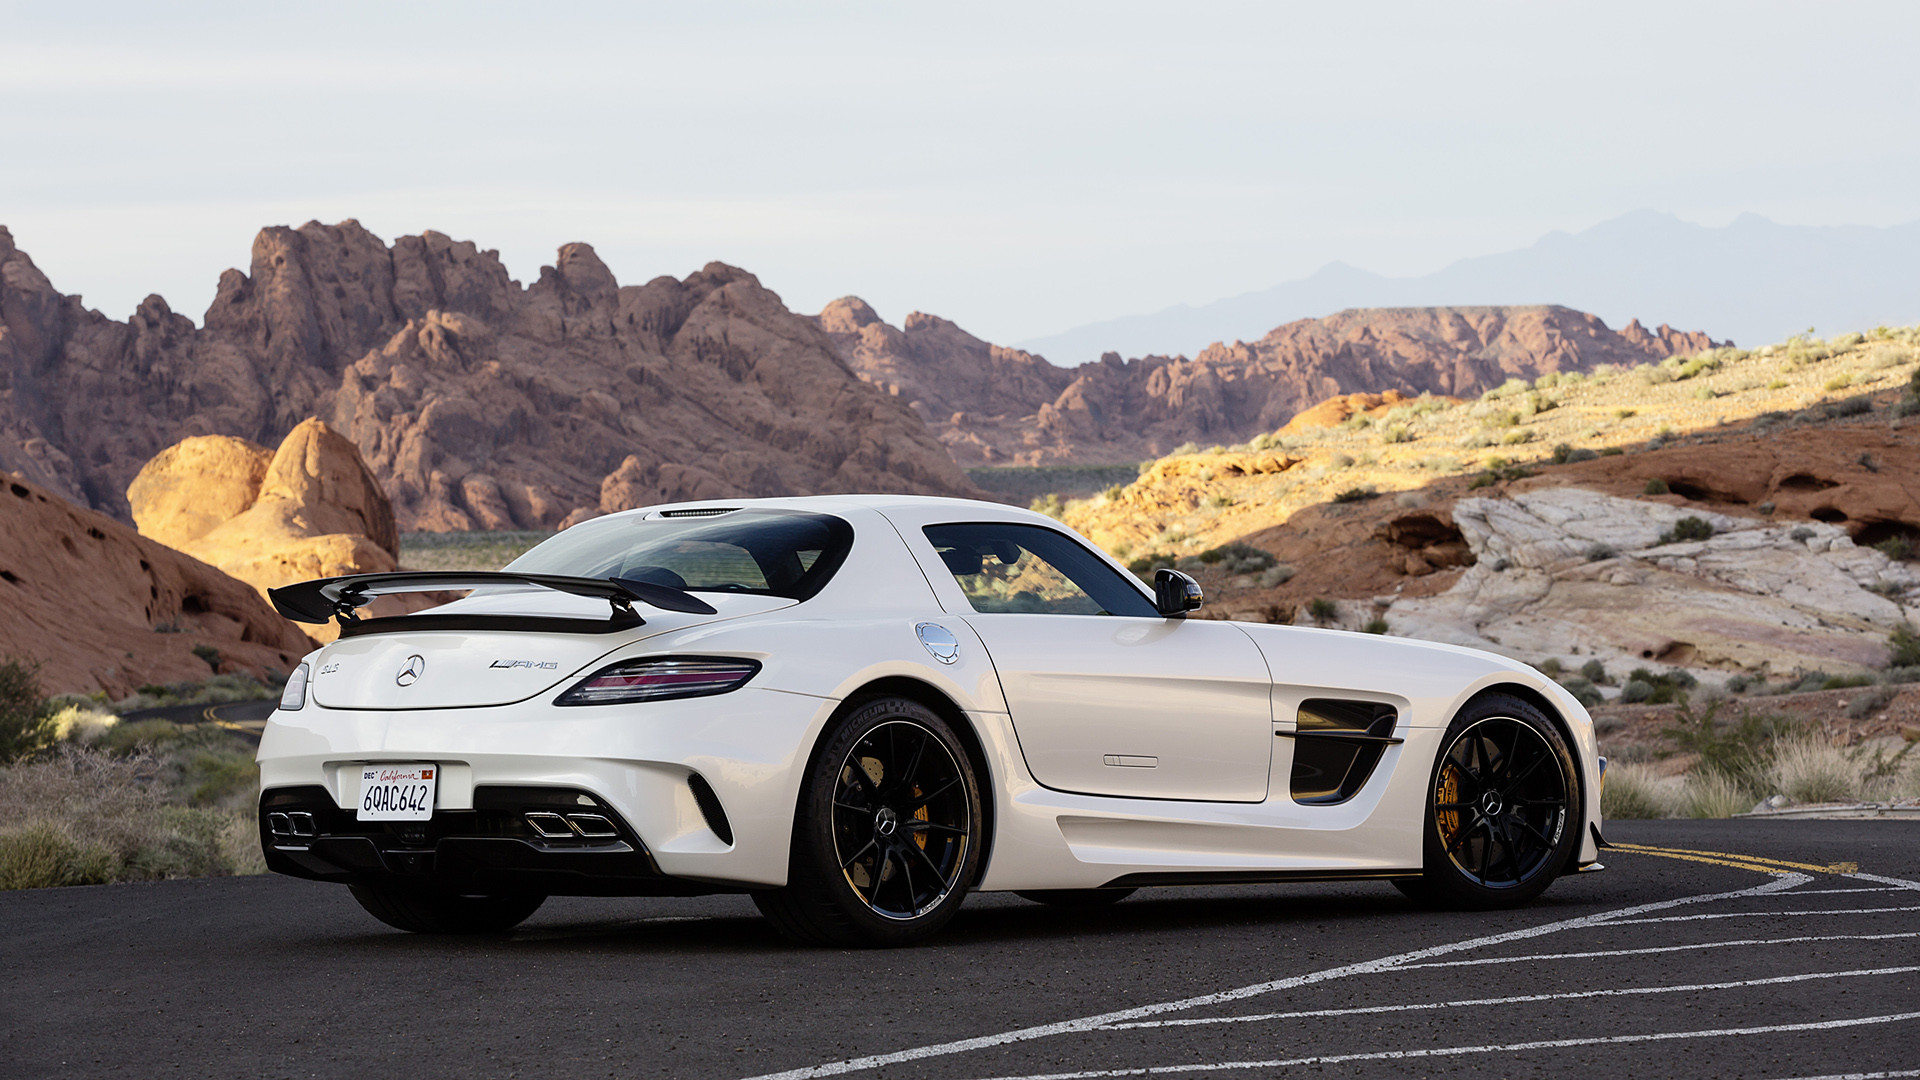 1920x1080 2014 Mercedes-Benz SLS AMG Black Series picture